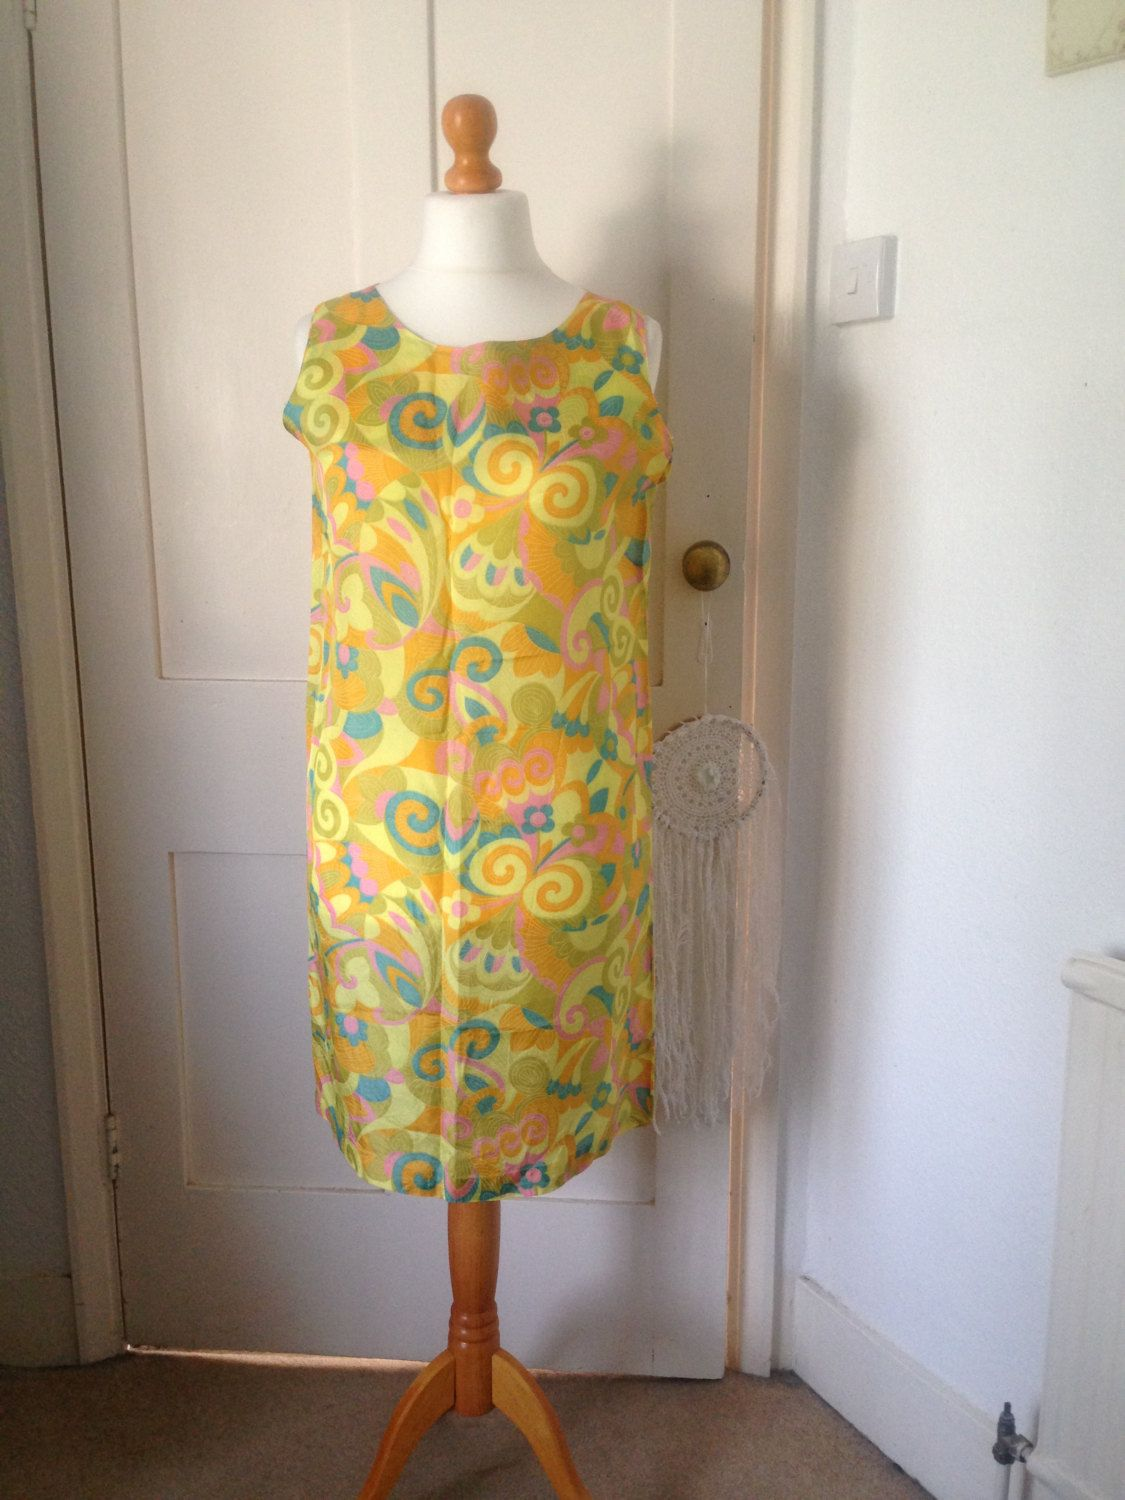 Just listed! Groovy vintage 60s psychedelic flower power dress in my @Etsy shop https://www.etsy.com/uk/listing/243845083/vintage-60s-dress-psychedelic-mod